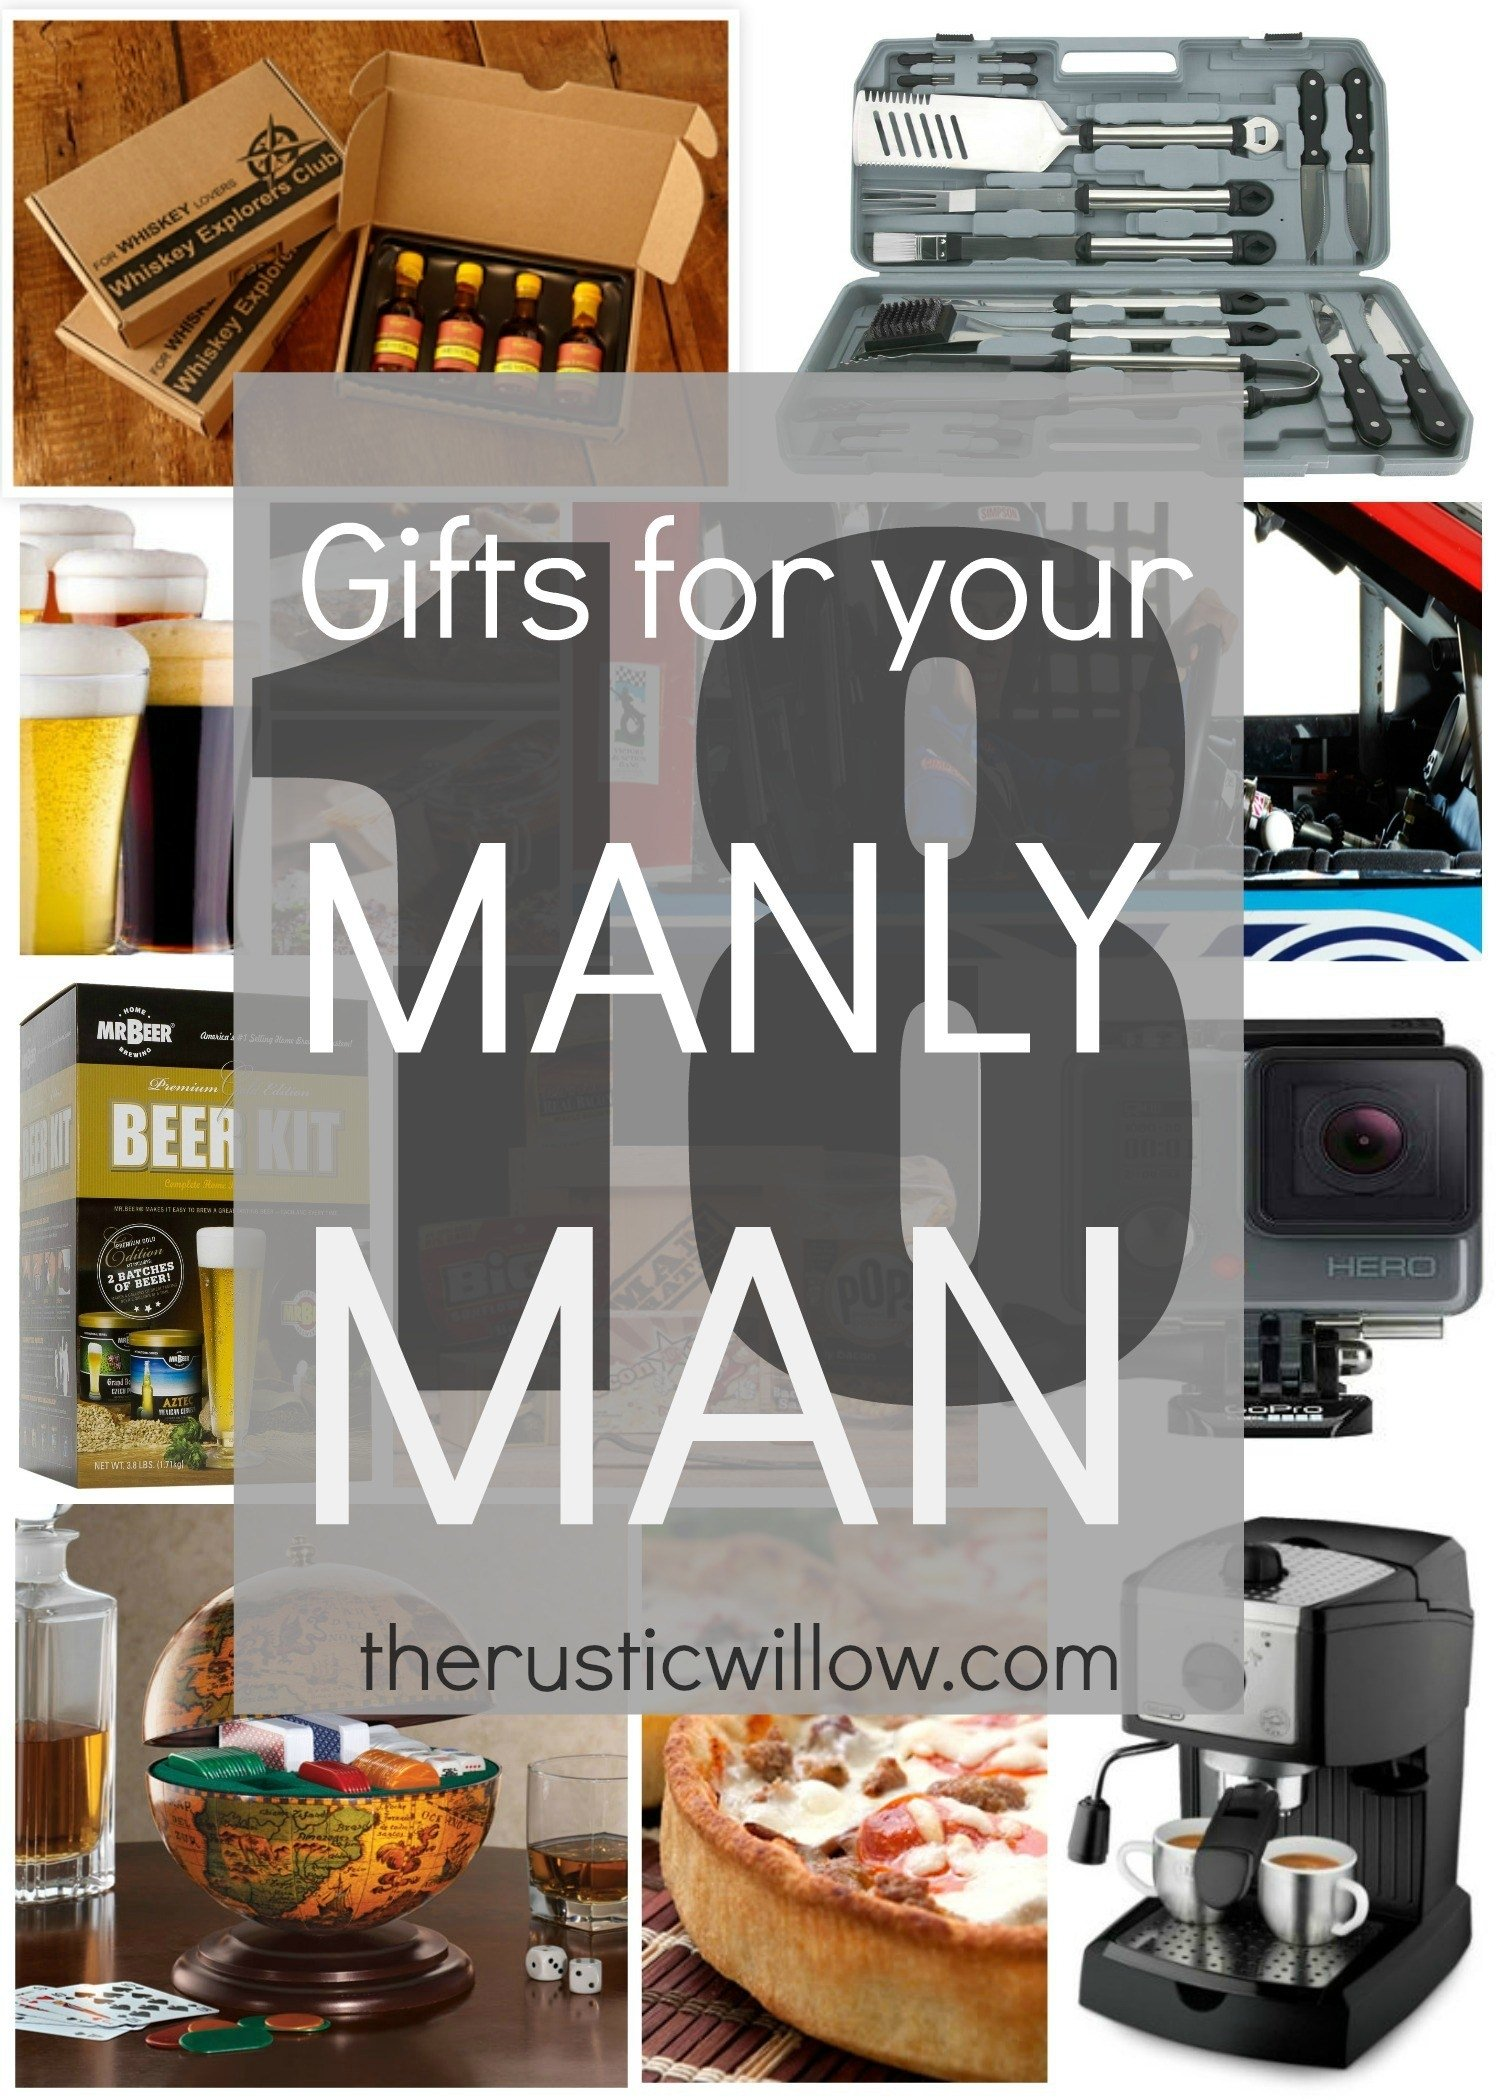 10 Nice Ideas For Gifts For Men gift guide for men the gifts men actually want the rustic willow 4 2021